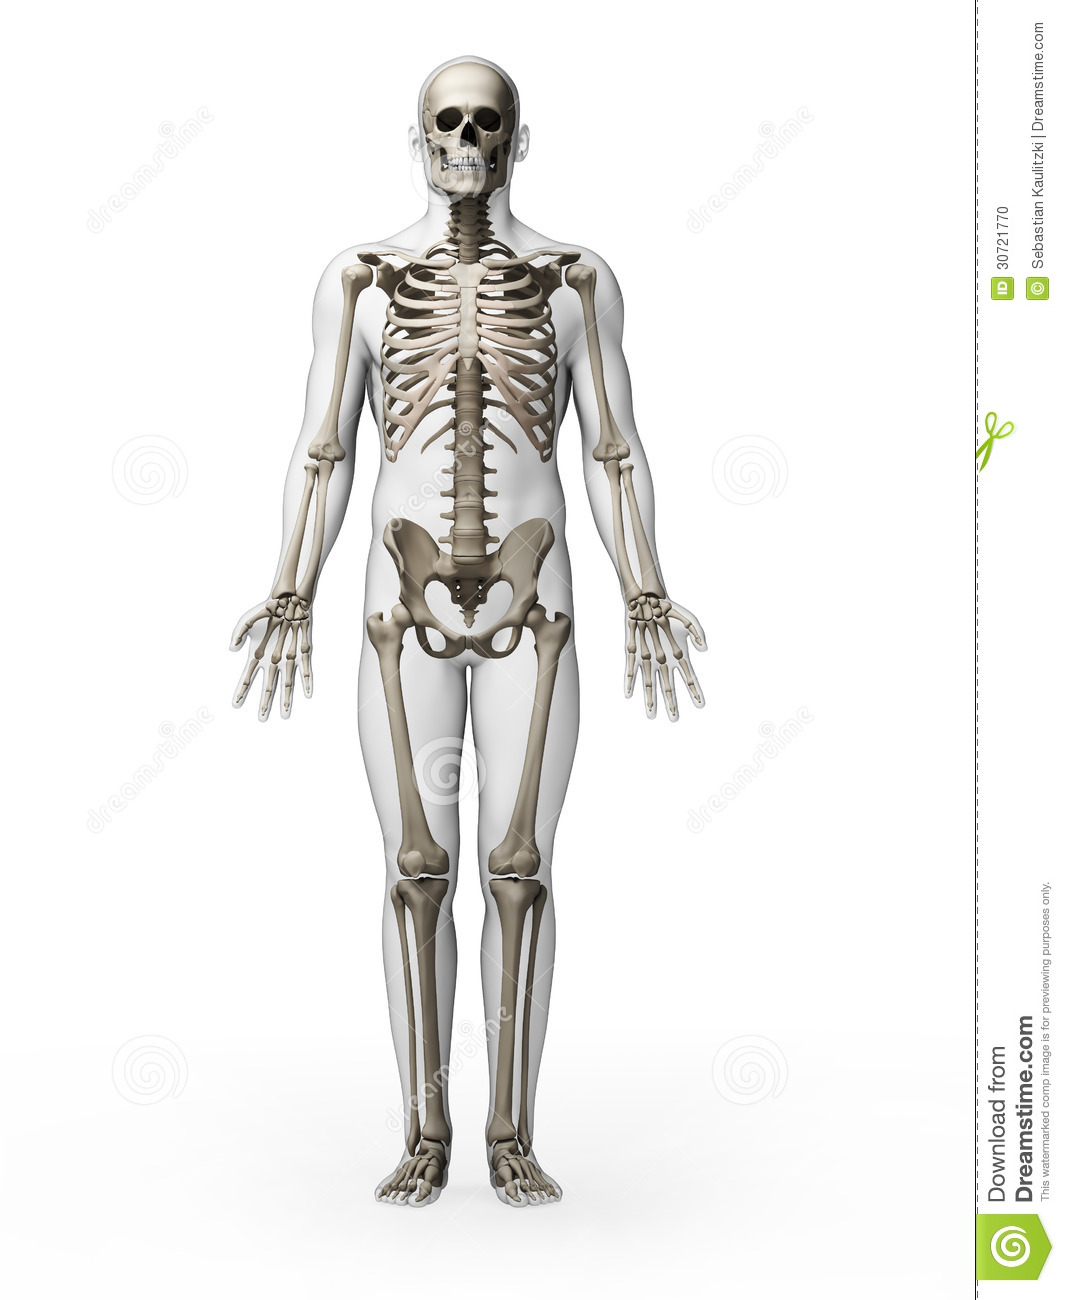 Human Skeleton Stock Photo - Image: 30721770